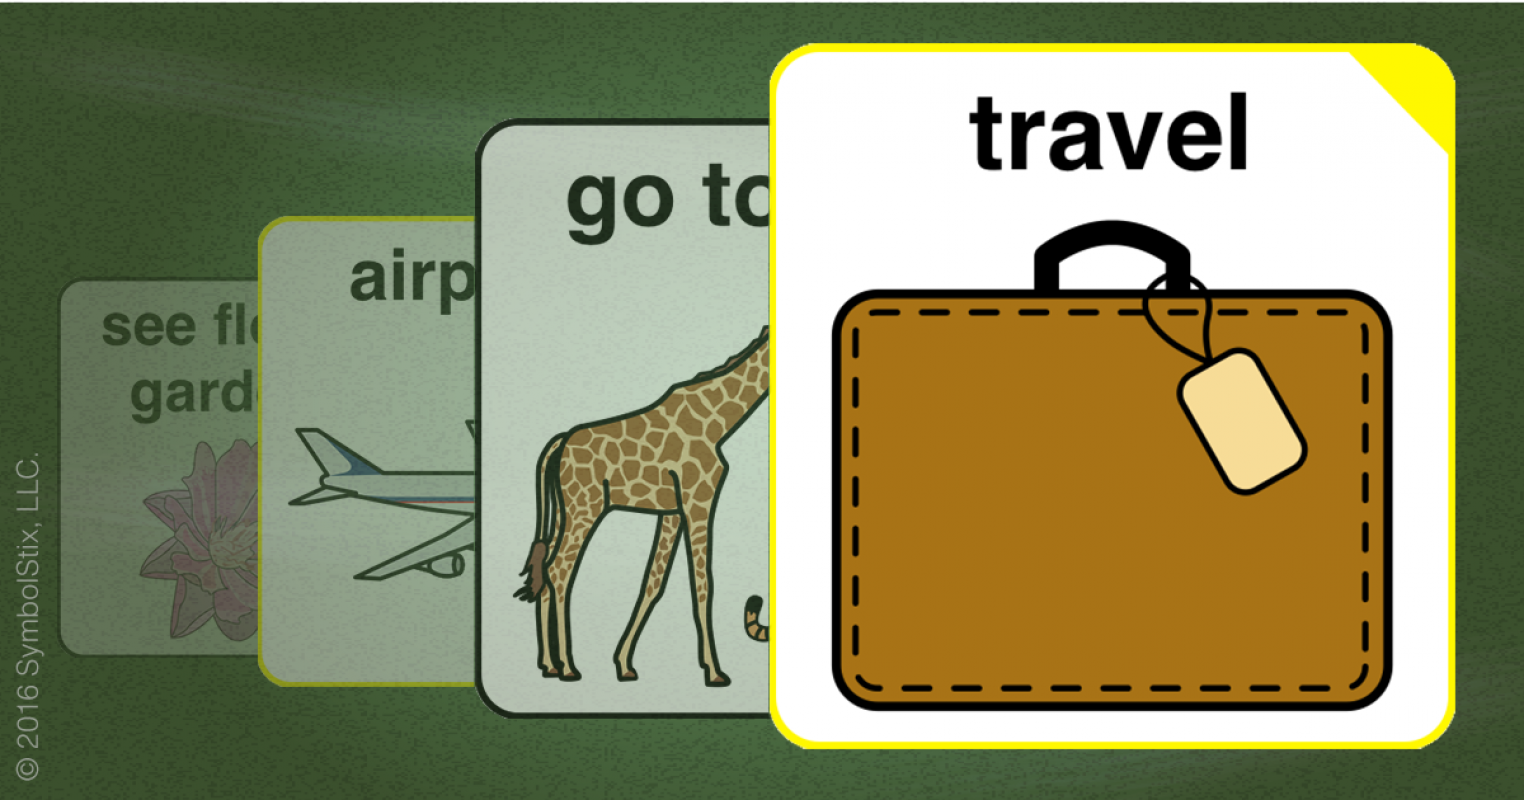 Symbol for the word travel showing the word travel on top of other travel related symbols